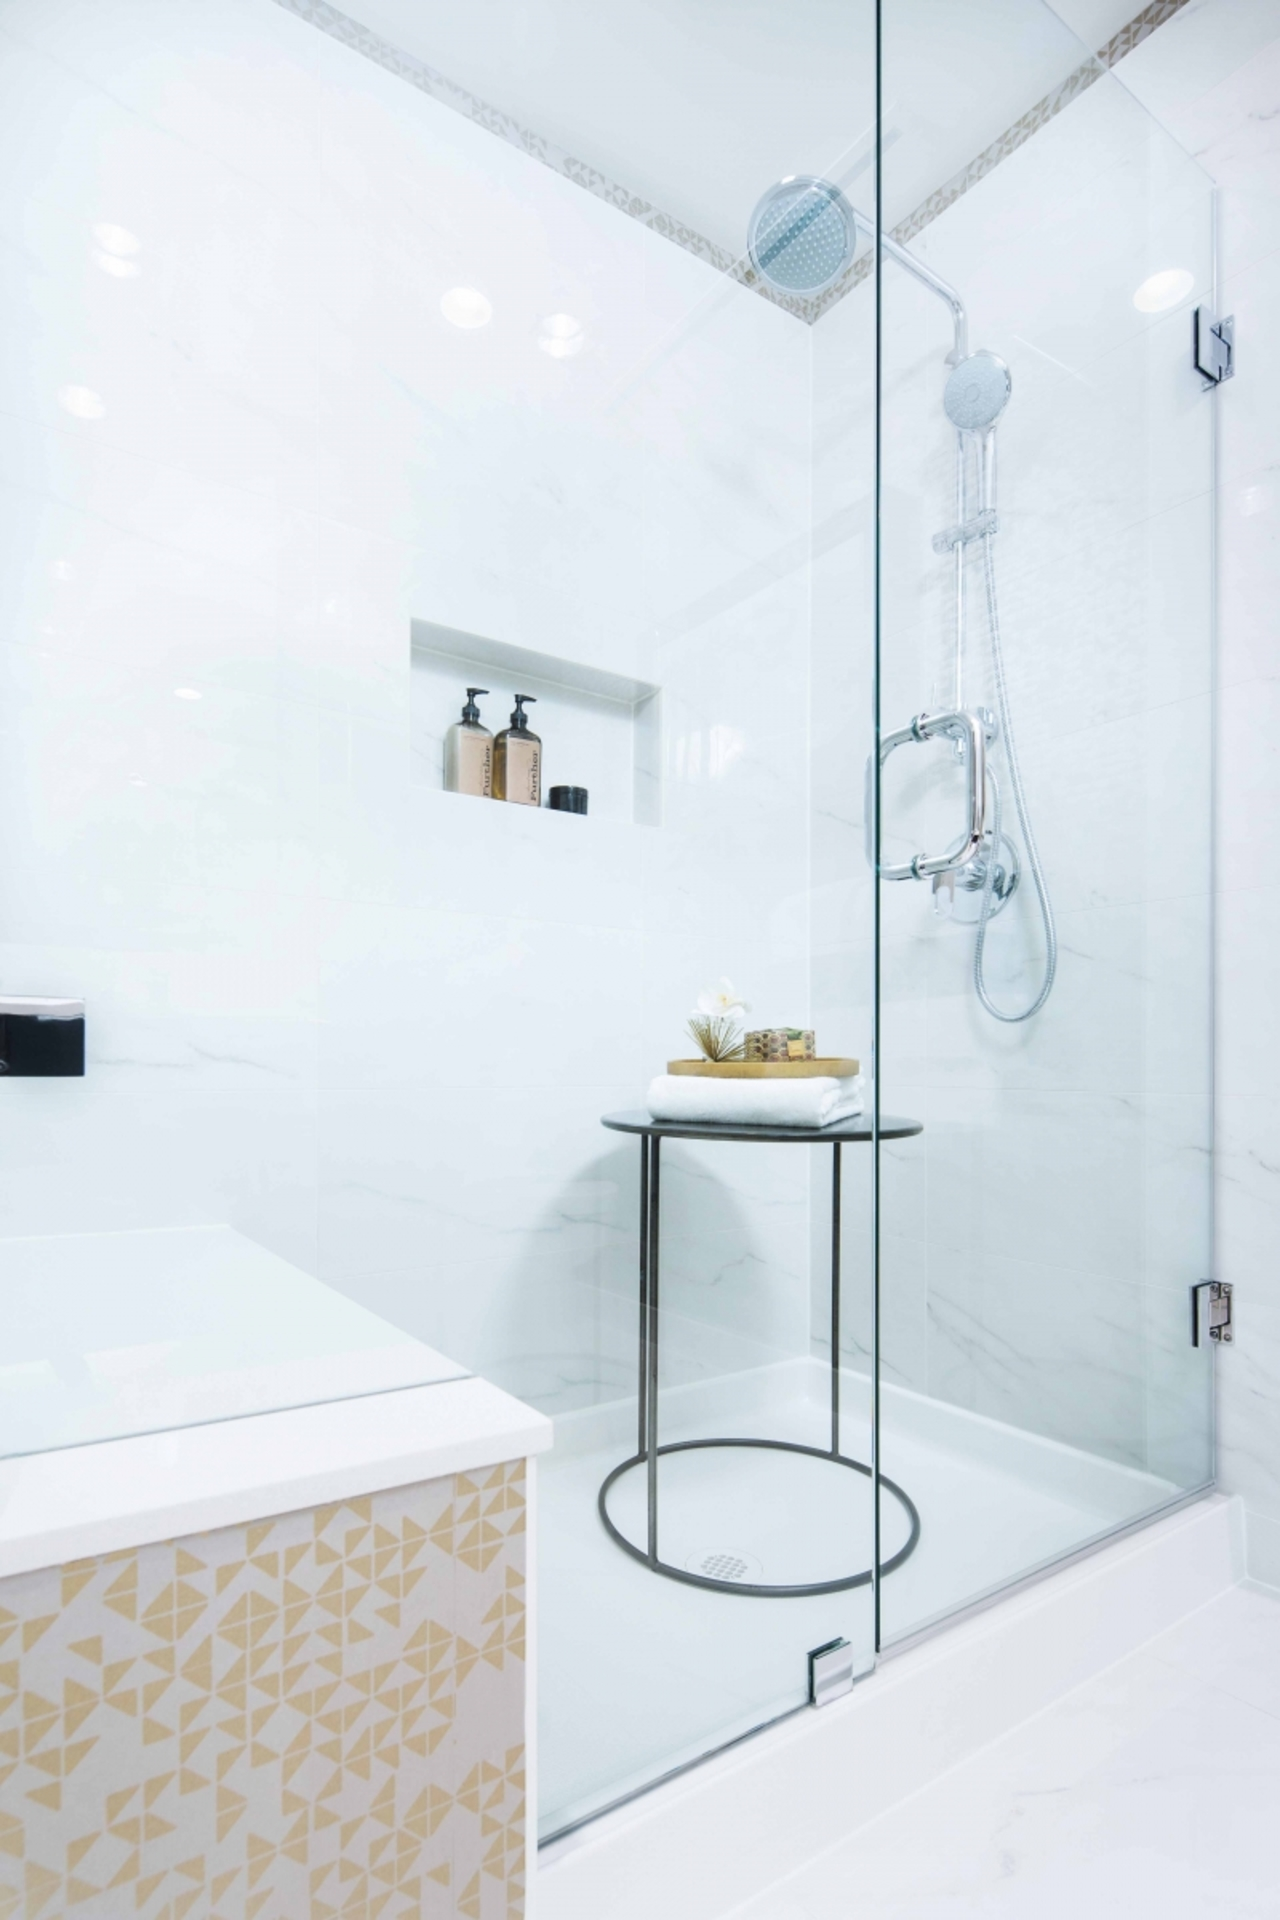 lloyd_shower at 2302 - 3100 Windsor Gate, North Coquitlam, Coquitlam